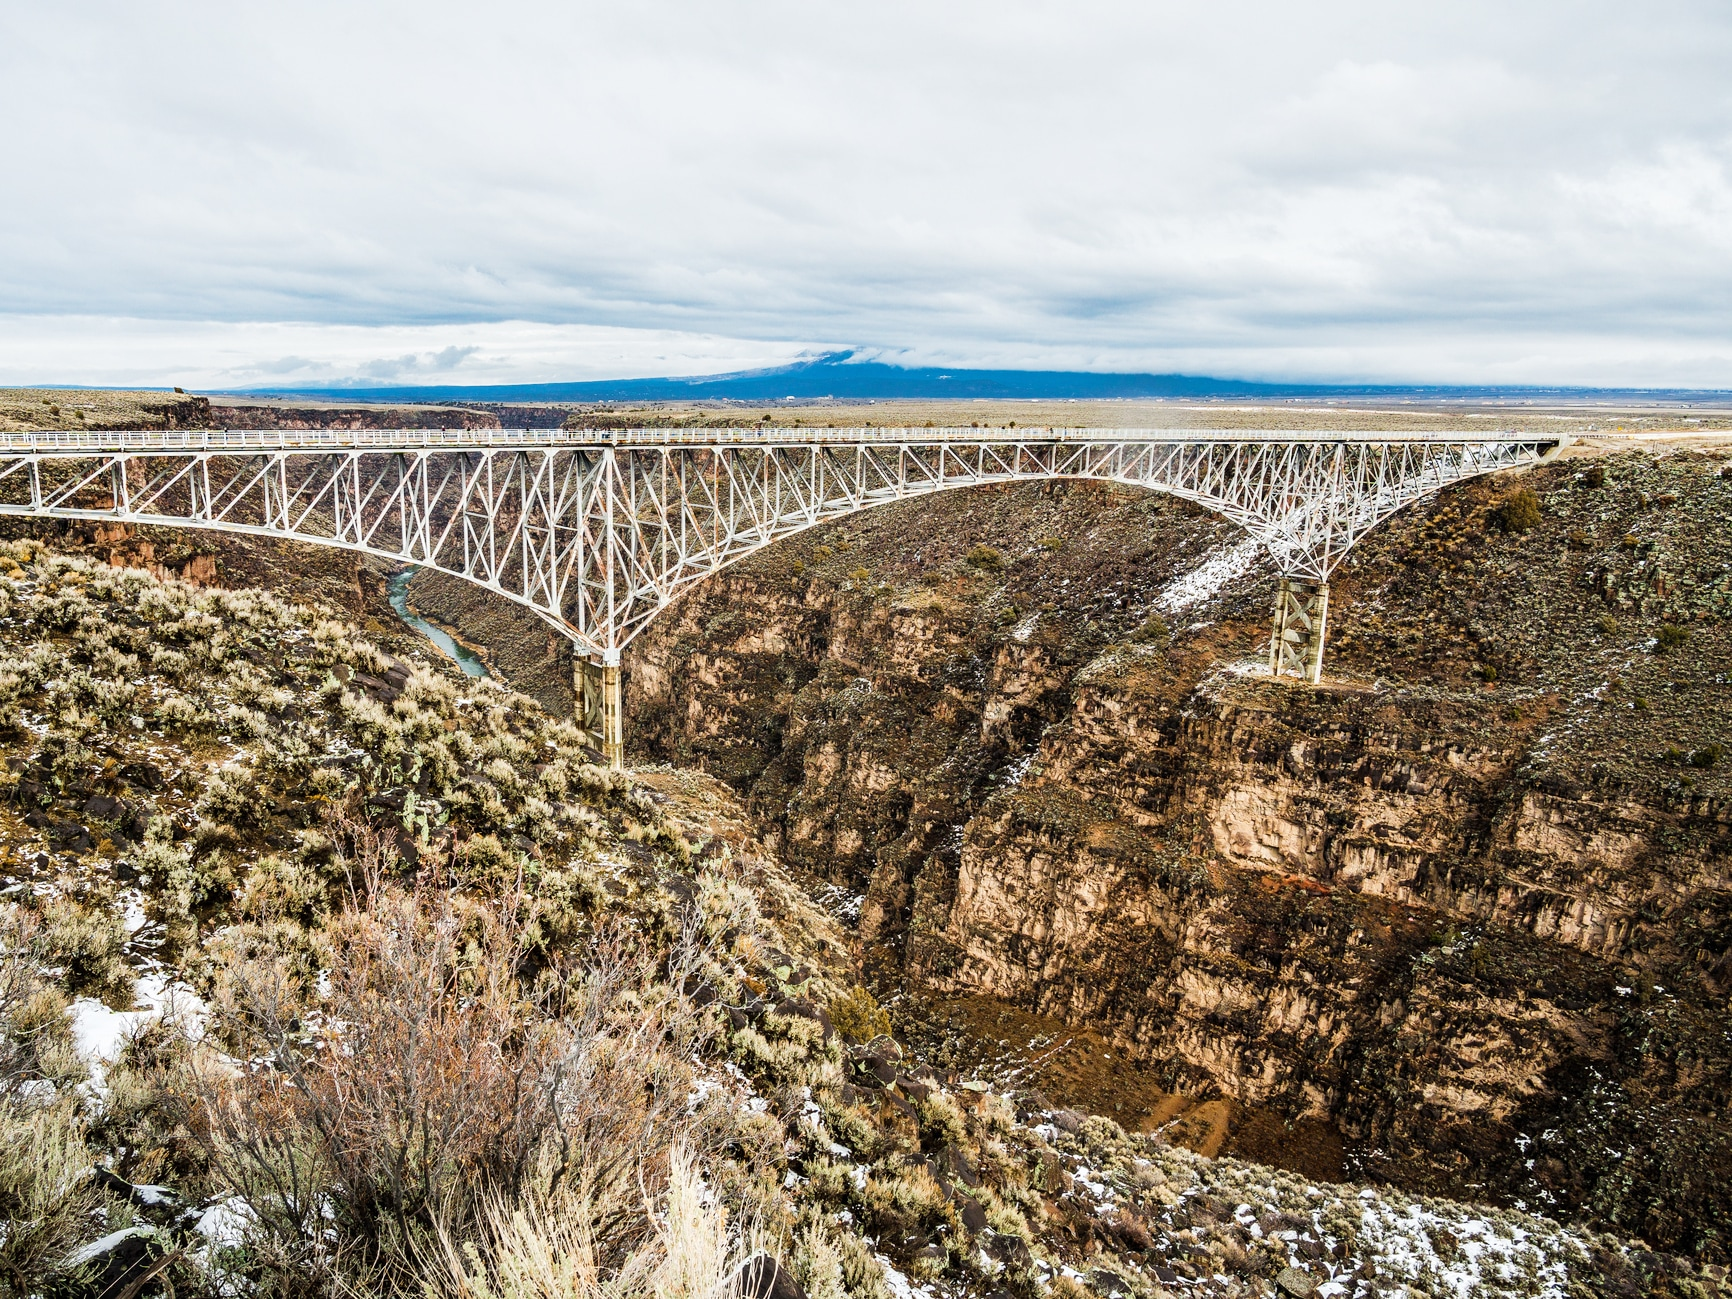 This rental is a short 19 miles from nearby Taos, where you can see stunning sites, such as the Rio Grande Gorge Bridge.